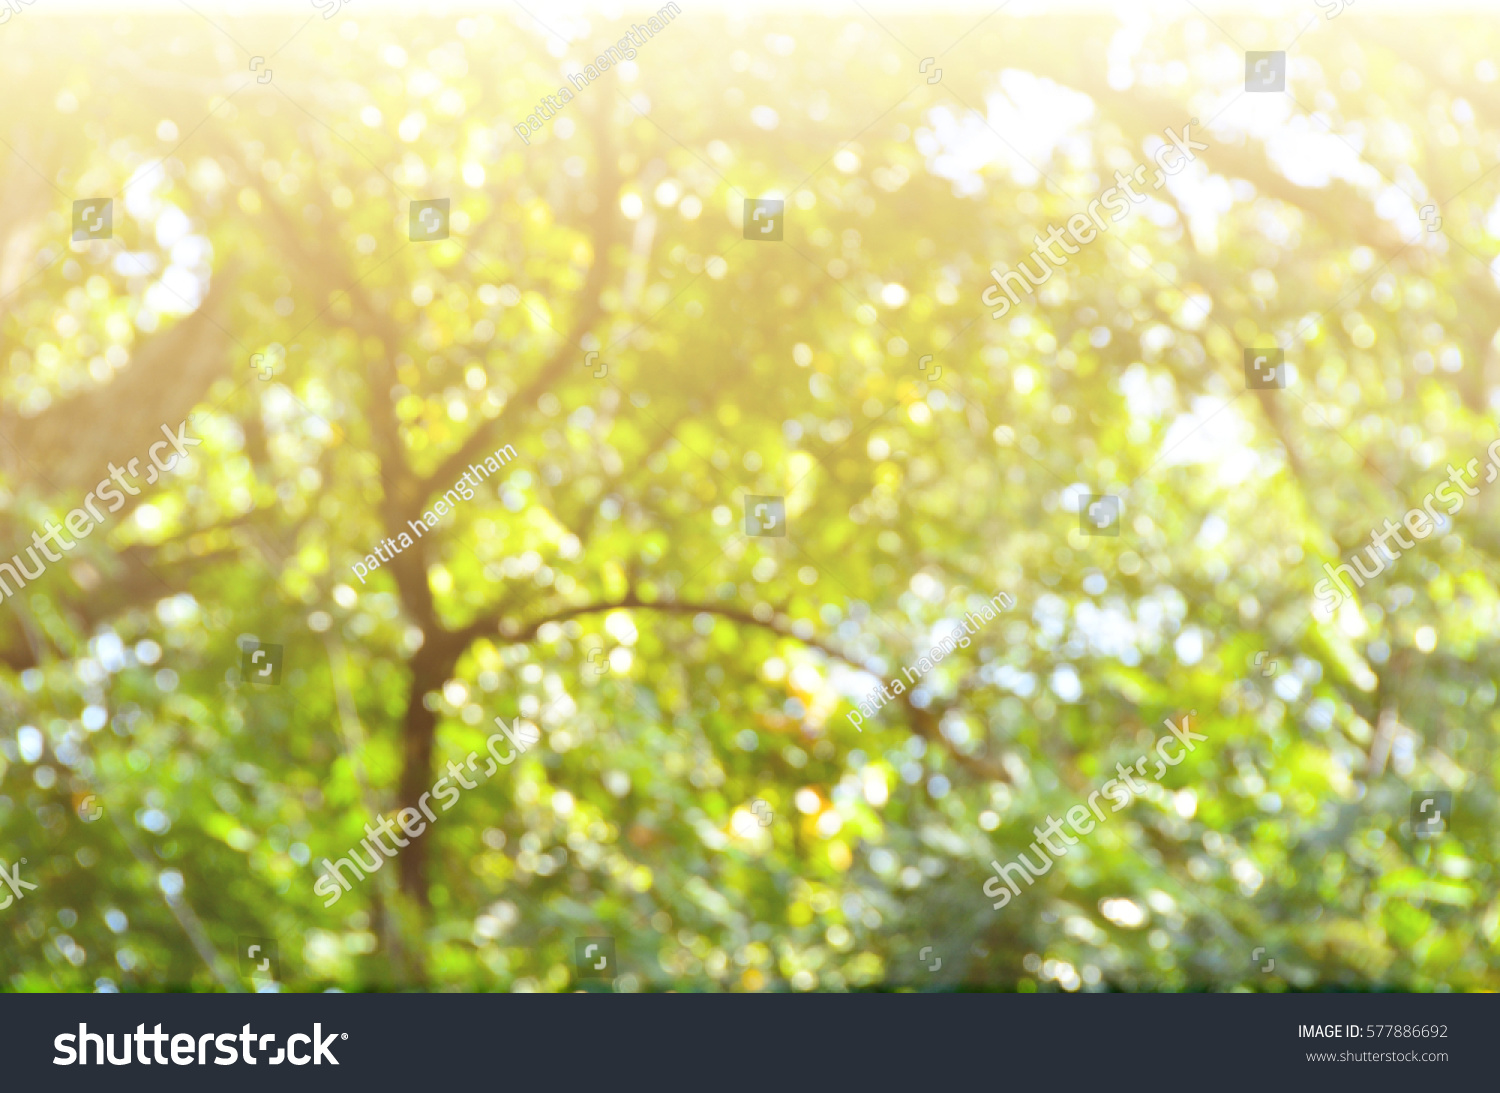 Abstract Art Background Wallpaper Bokeh Green Nature Blur Color